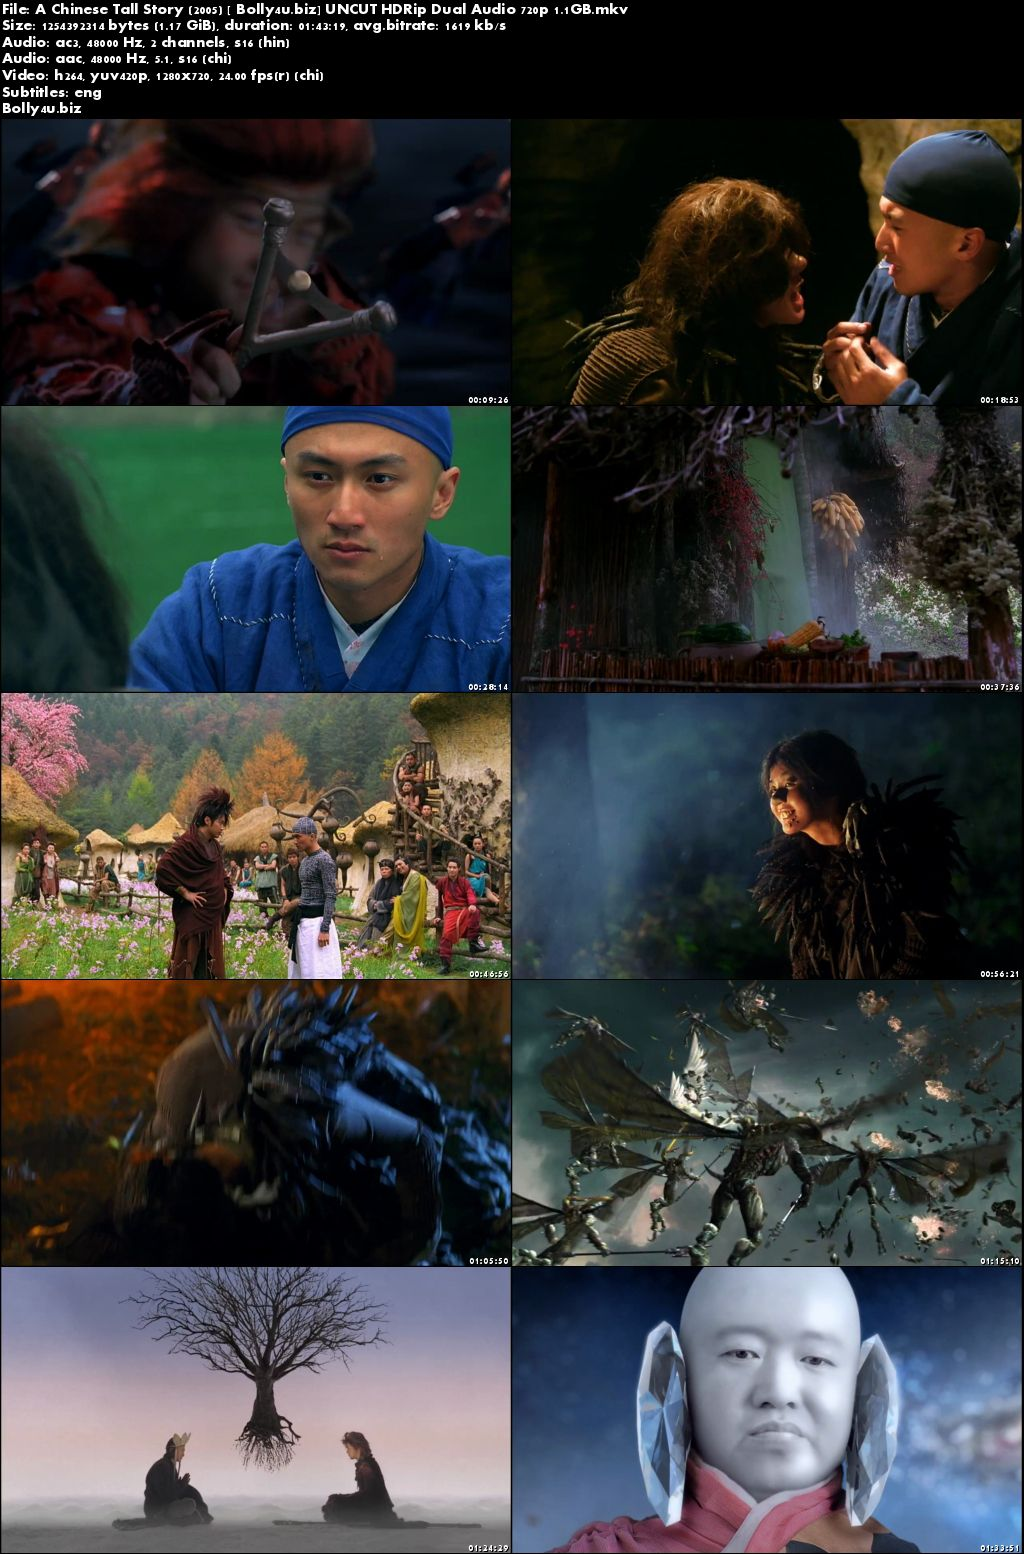 A Chinese Tall Story 2005 HDRip UNCUT Hindi Dual Audio 720p Download